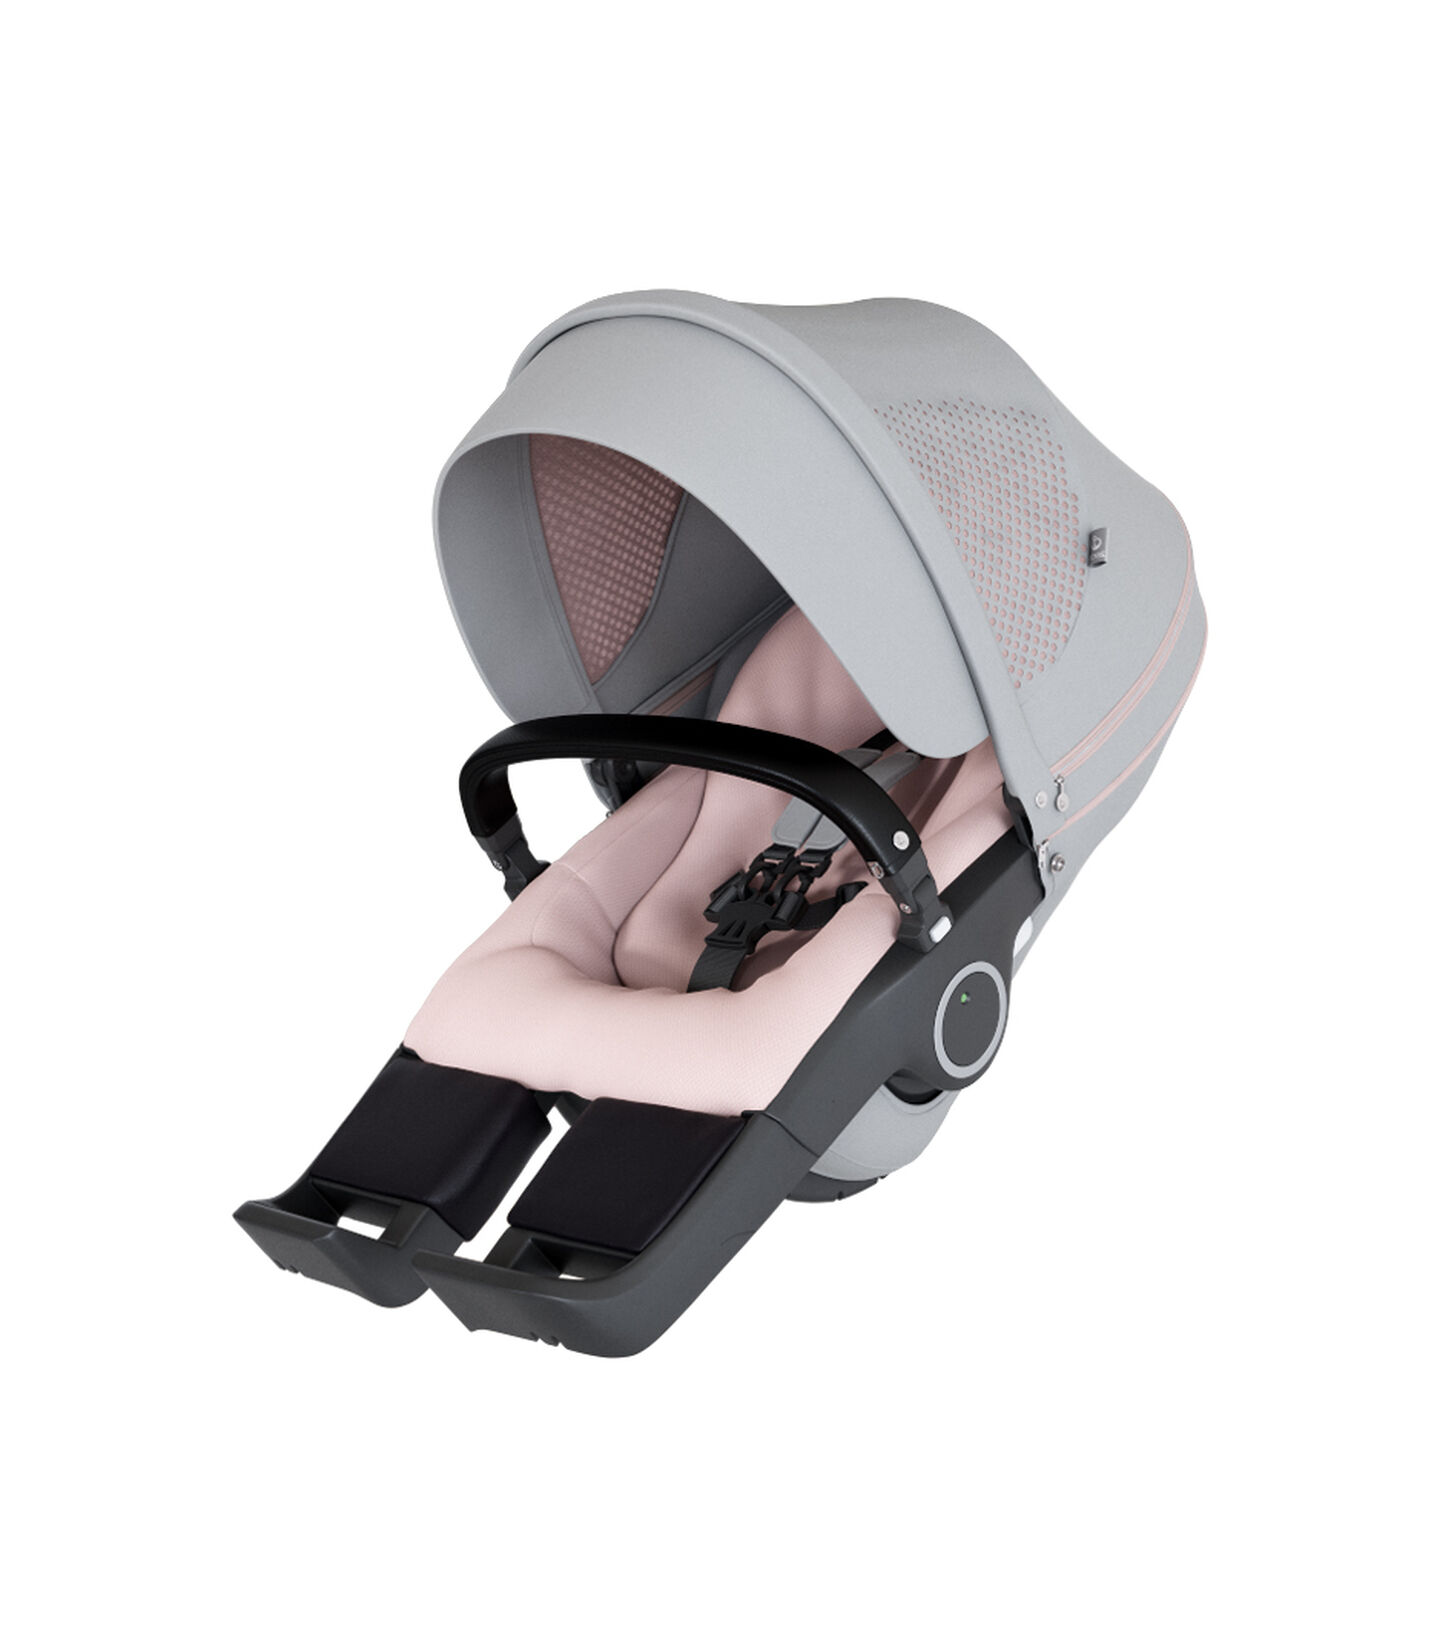 StokkeR Stroller Seat Athleisure Pink Mainview